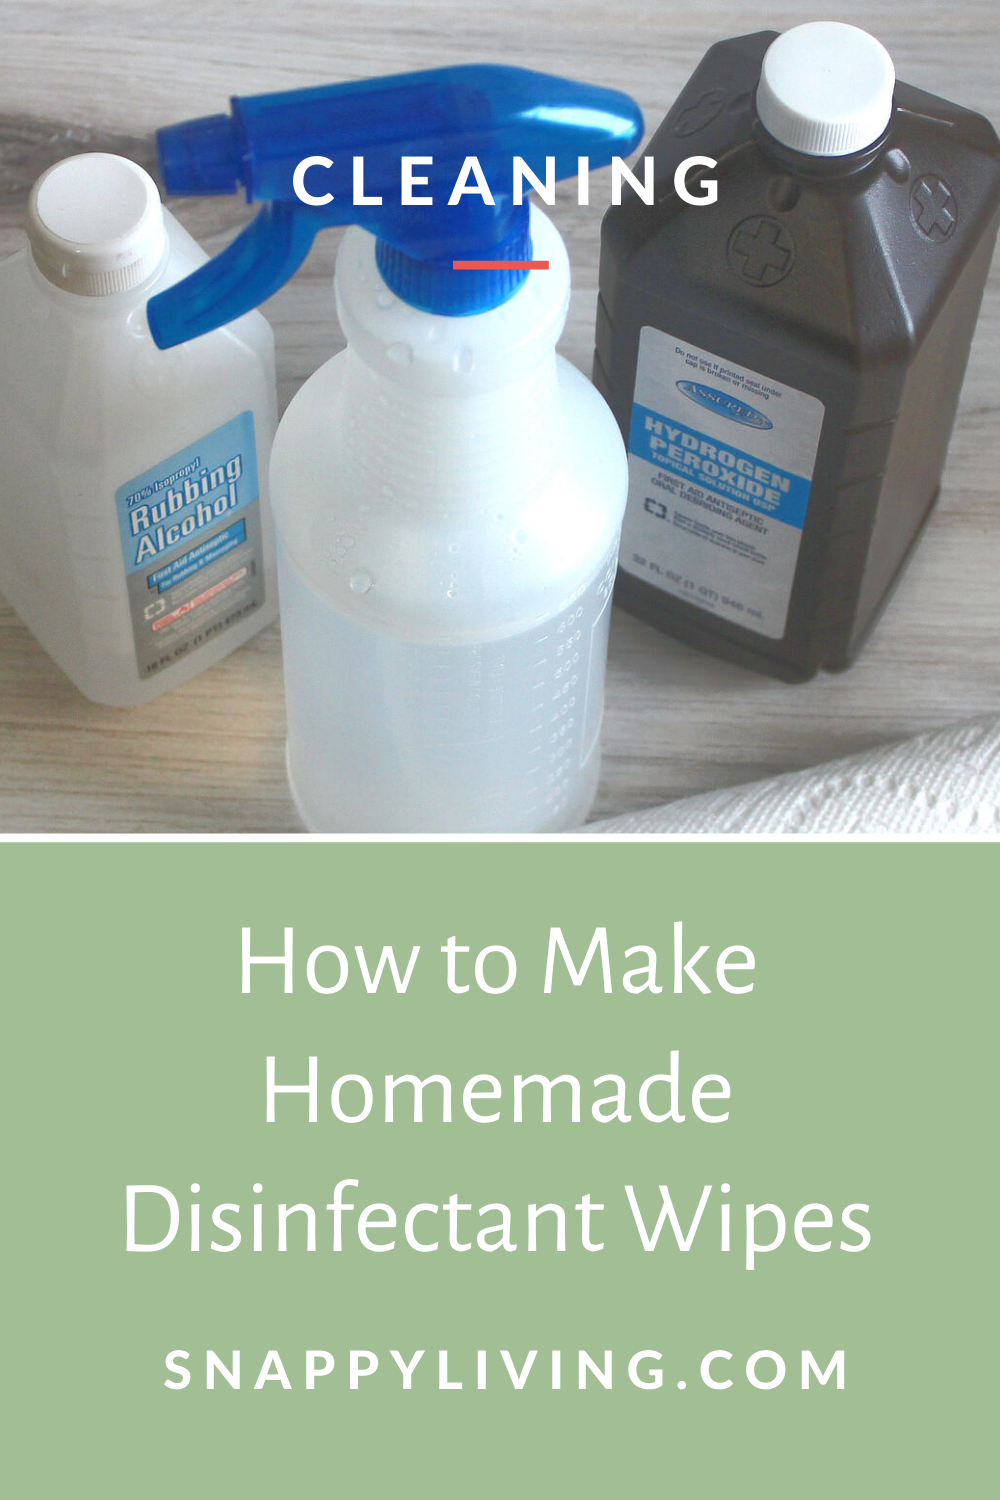 3 Best Ways To Make Homemade Disinfectant Wipes Snappy Living In 2020 Homemade Cleaning Solutions Cleaning Hacks Cleaning